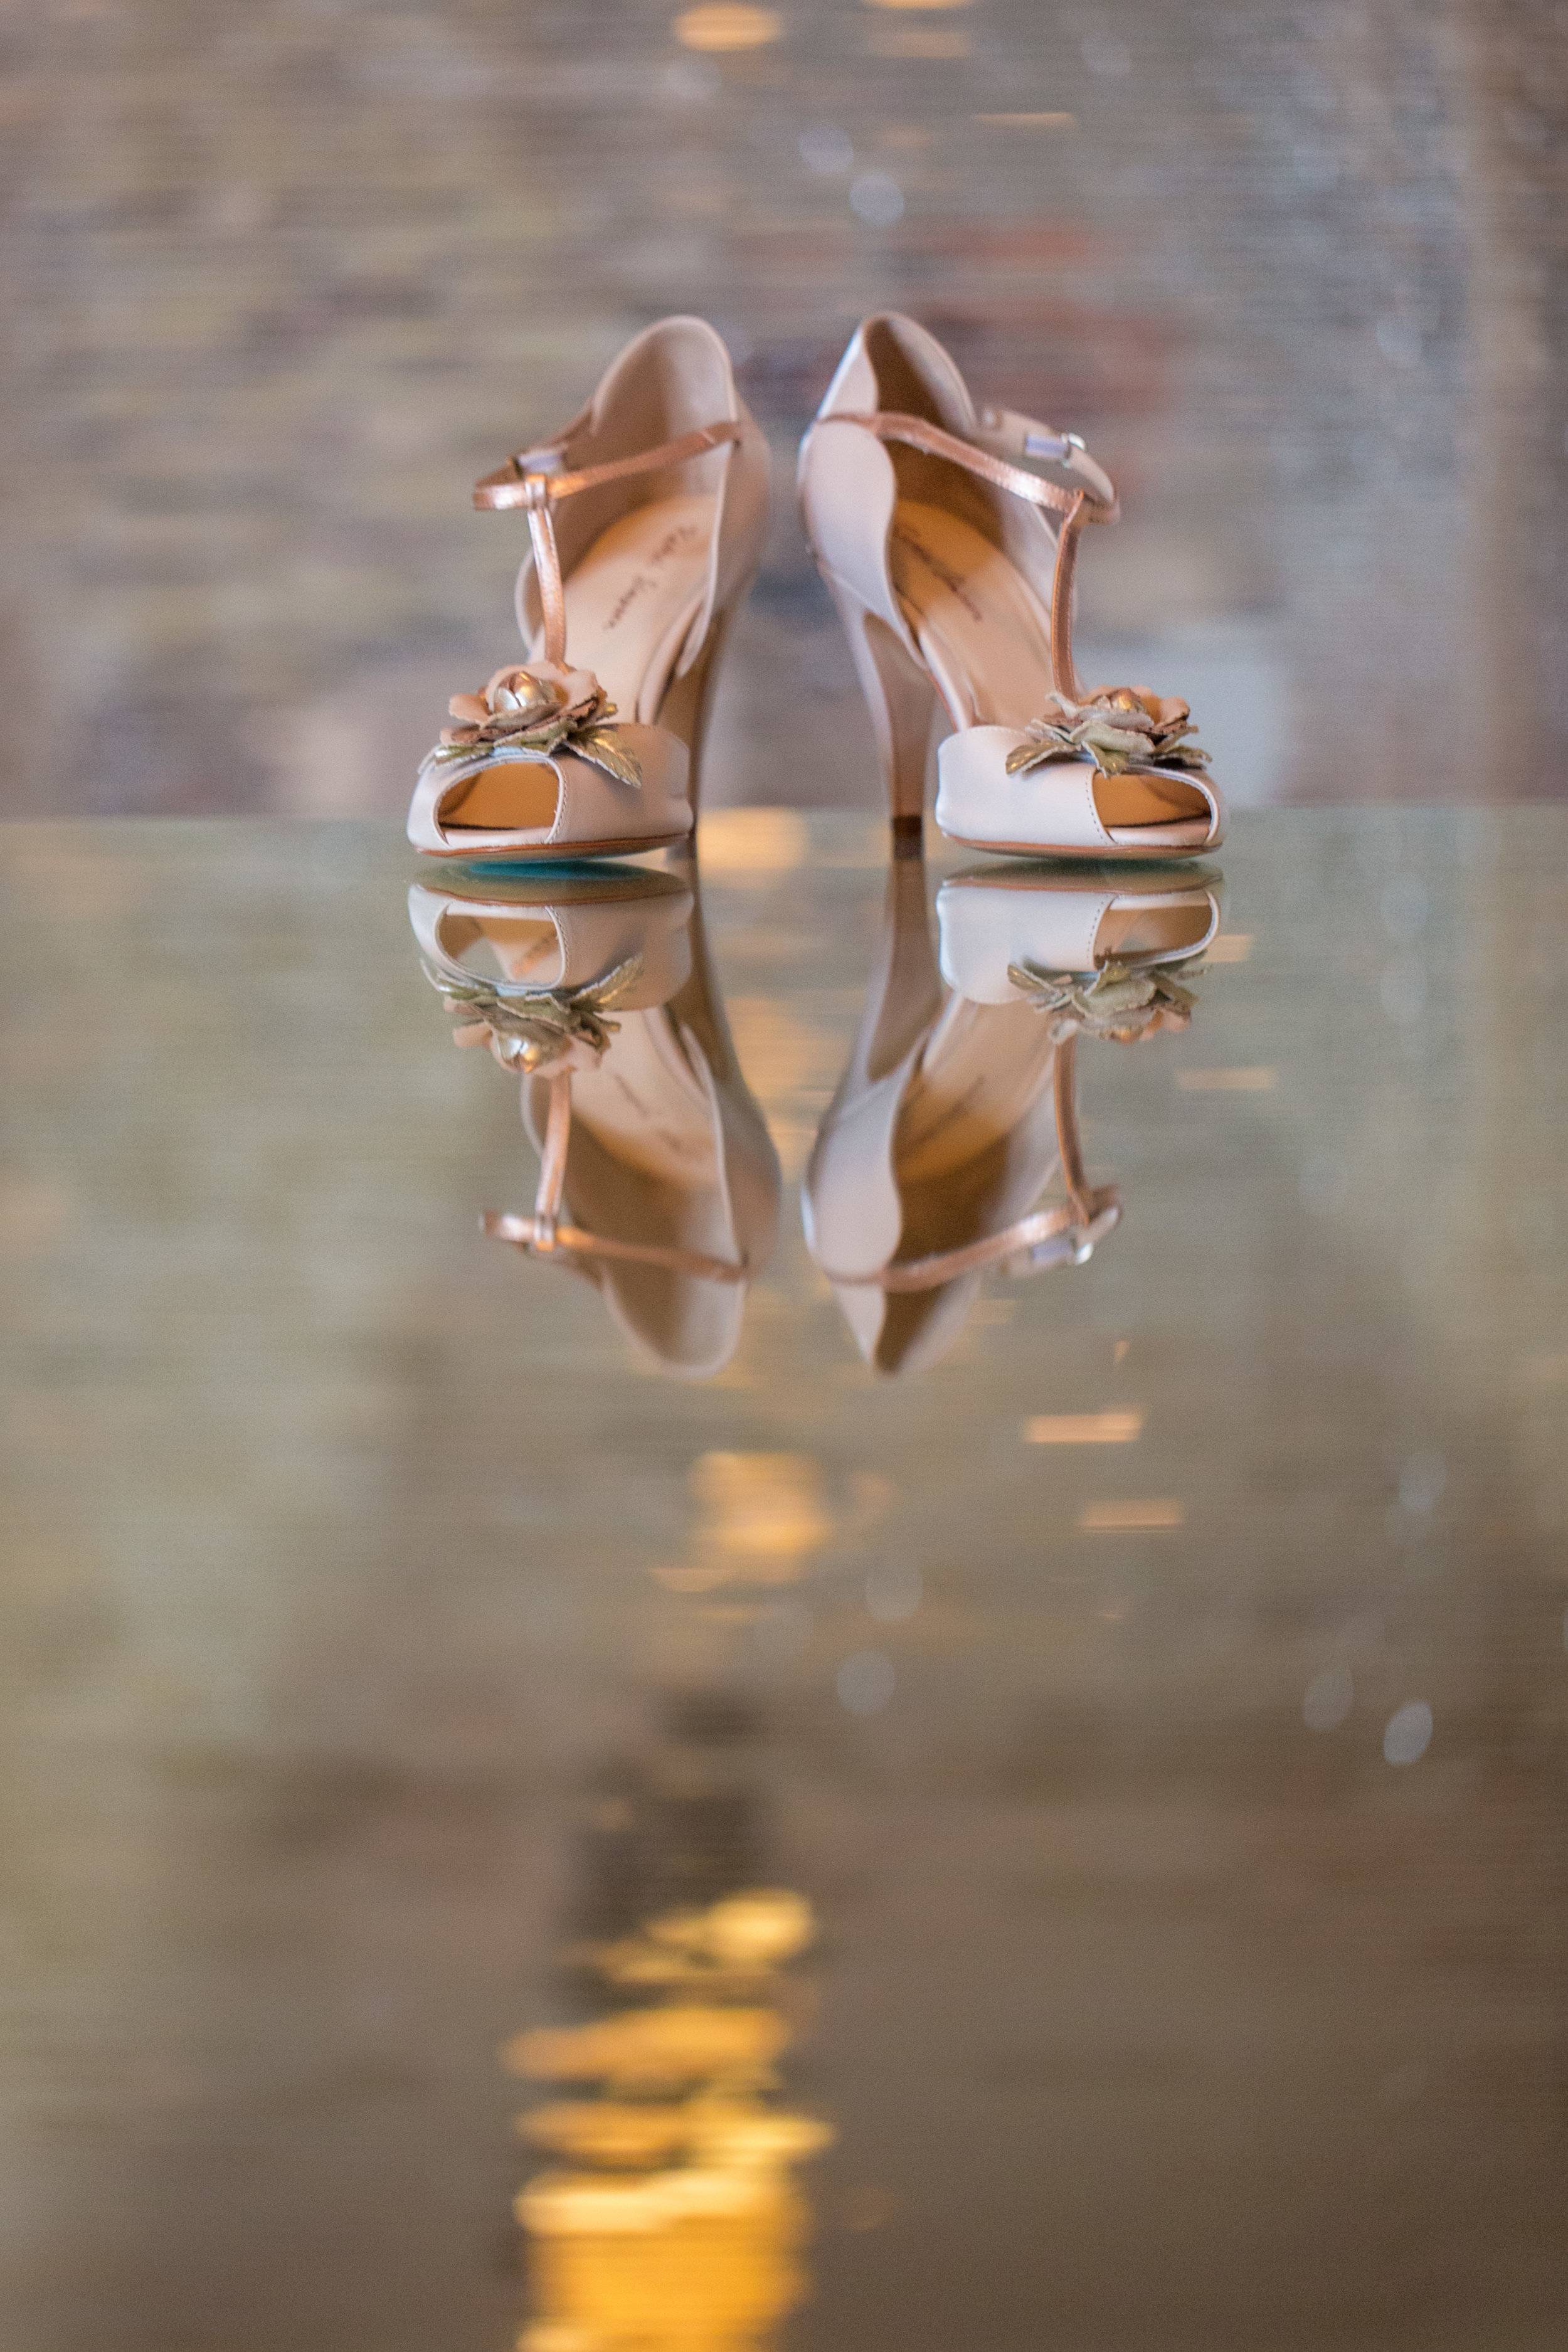 Pretty pink rosette wedding shoes.Wedding Planning by  Andrea Eppolito Events  · Photography by  Shandro Photo   · Wedding Venue  Four Seasons Las Vegas  · Floral and Decor by  Destination by Design  · Chandeliers and Lighting by  LED Unplugged